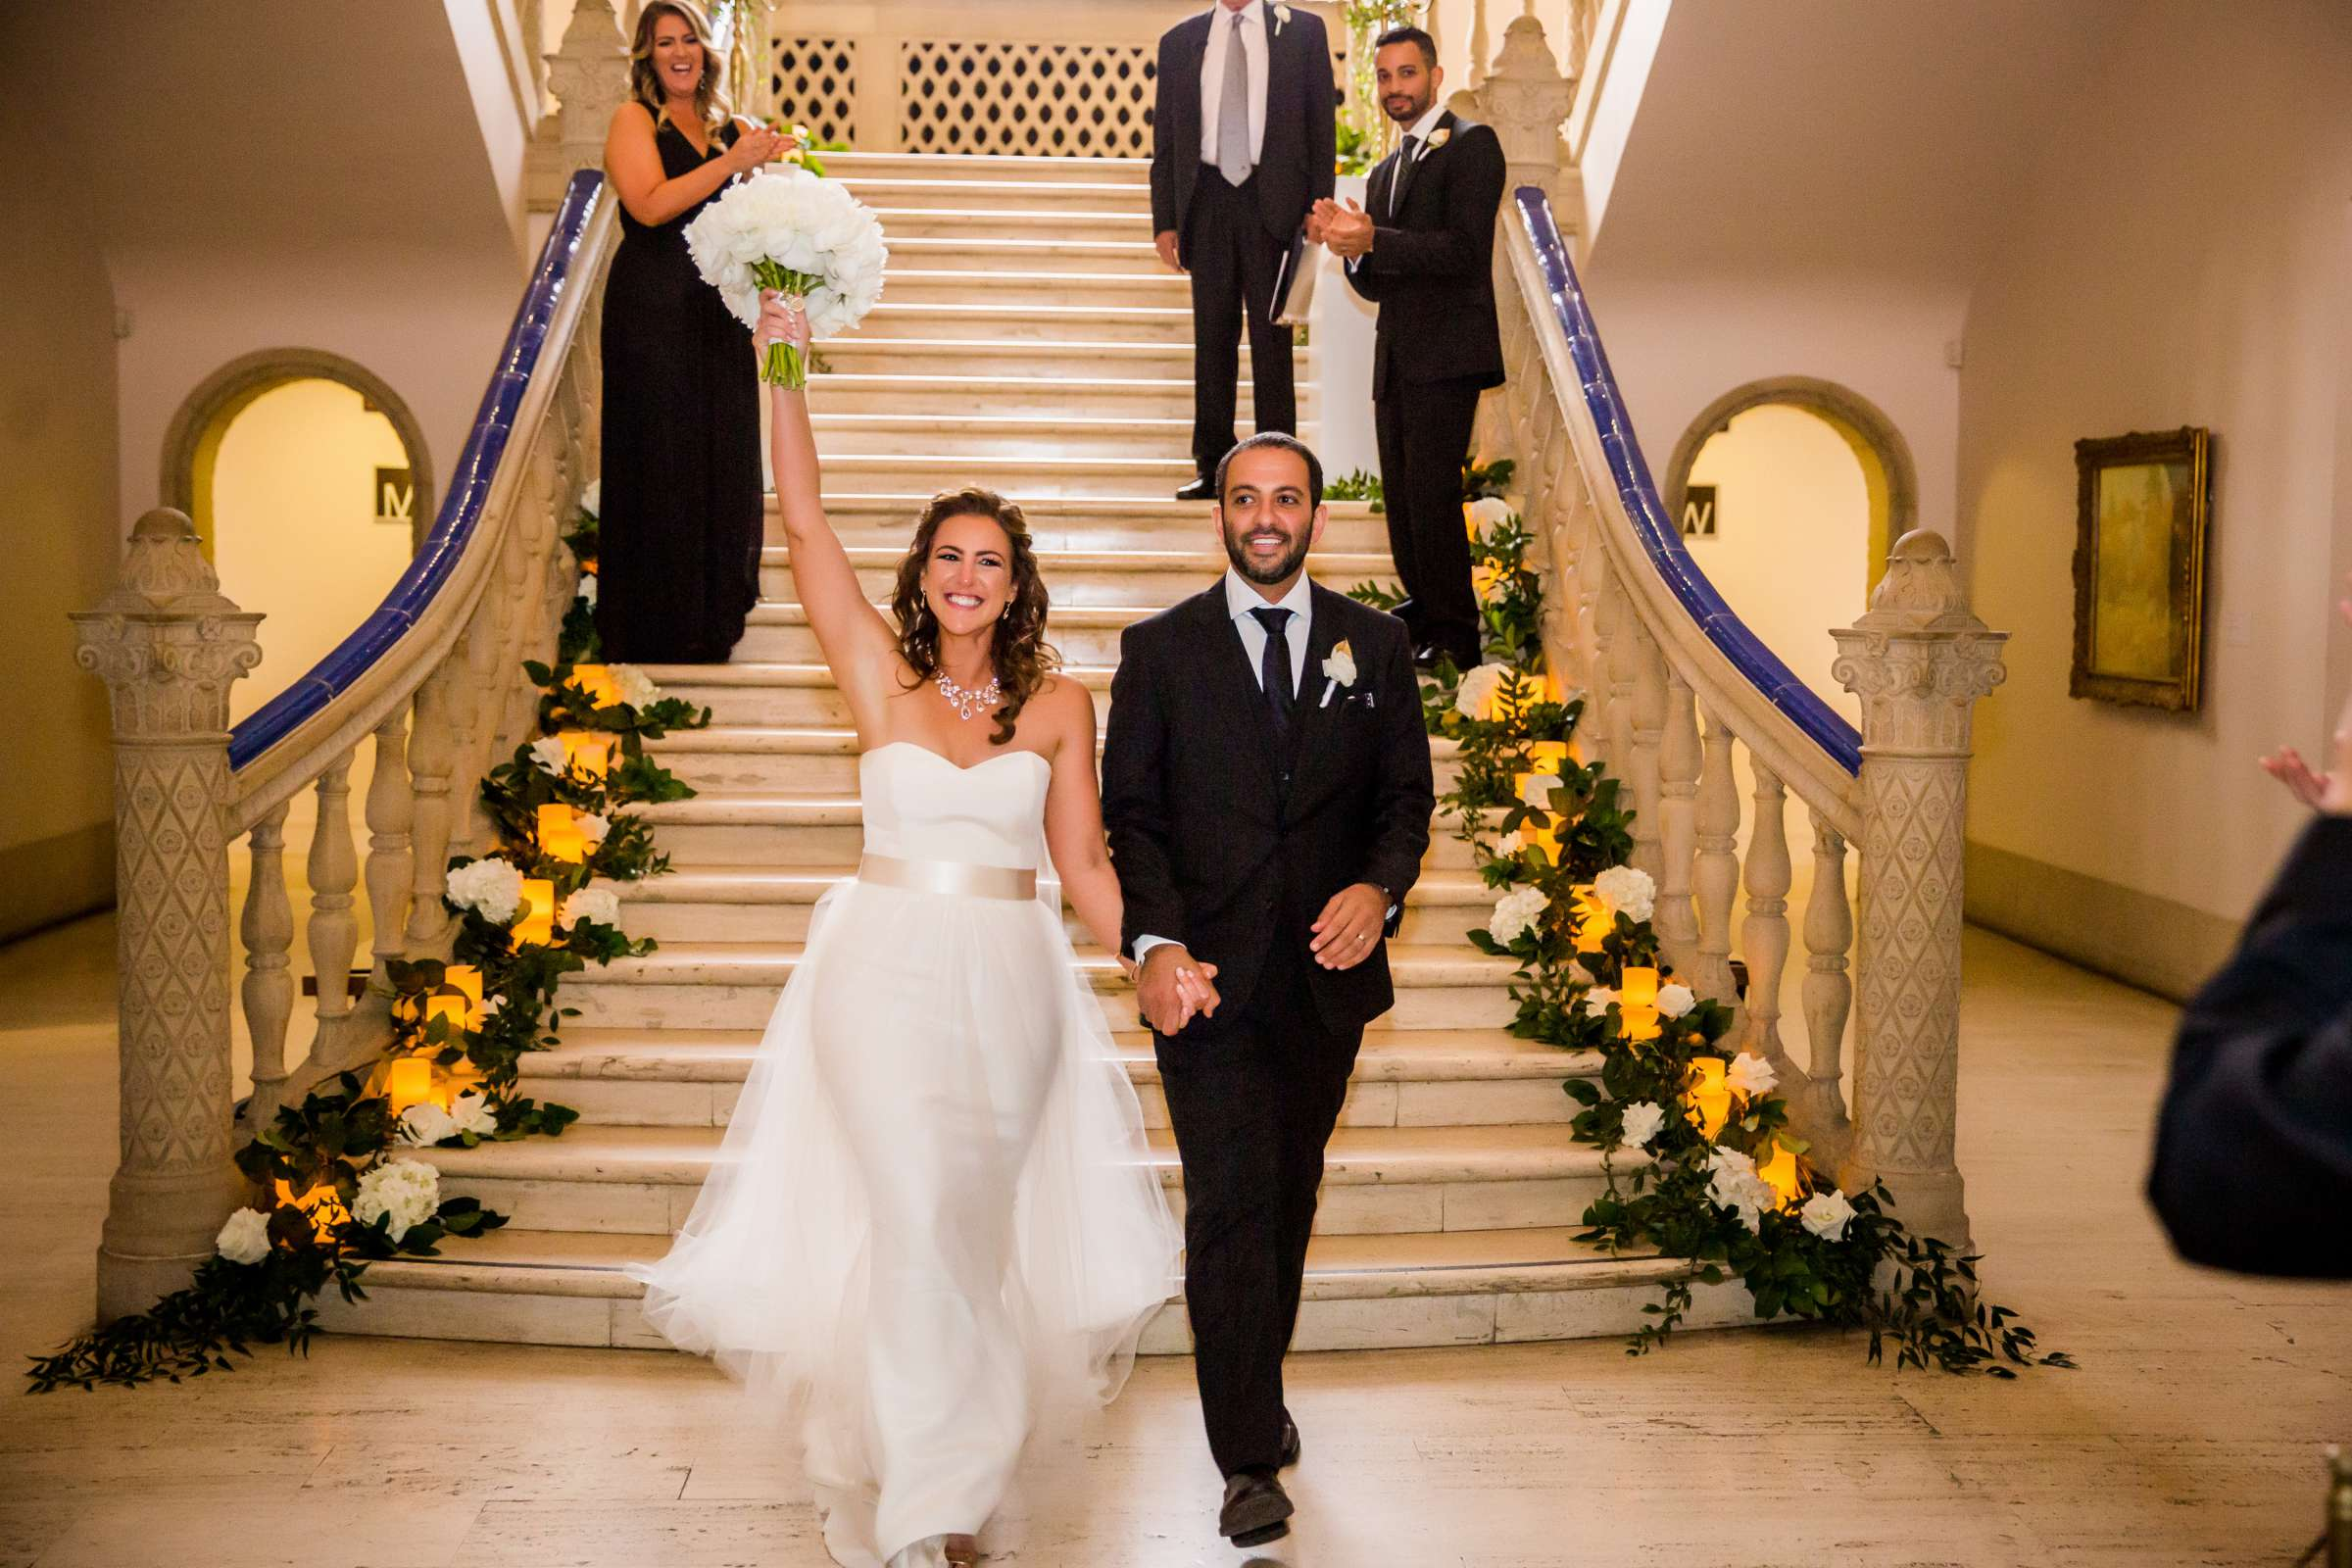 San Diego Museum of Art Wedding coordinated by First Comes Love Weddings & Events, Ruthie and Larry Wedding Photo #236806 by True Photography